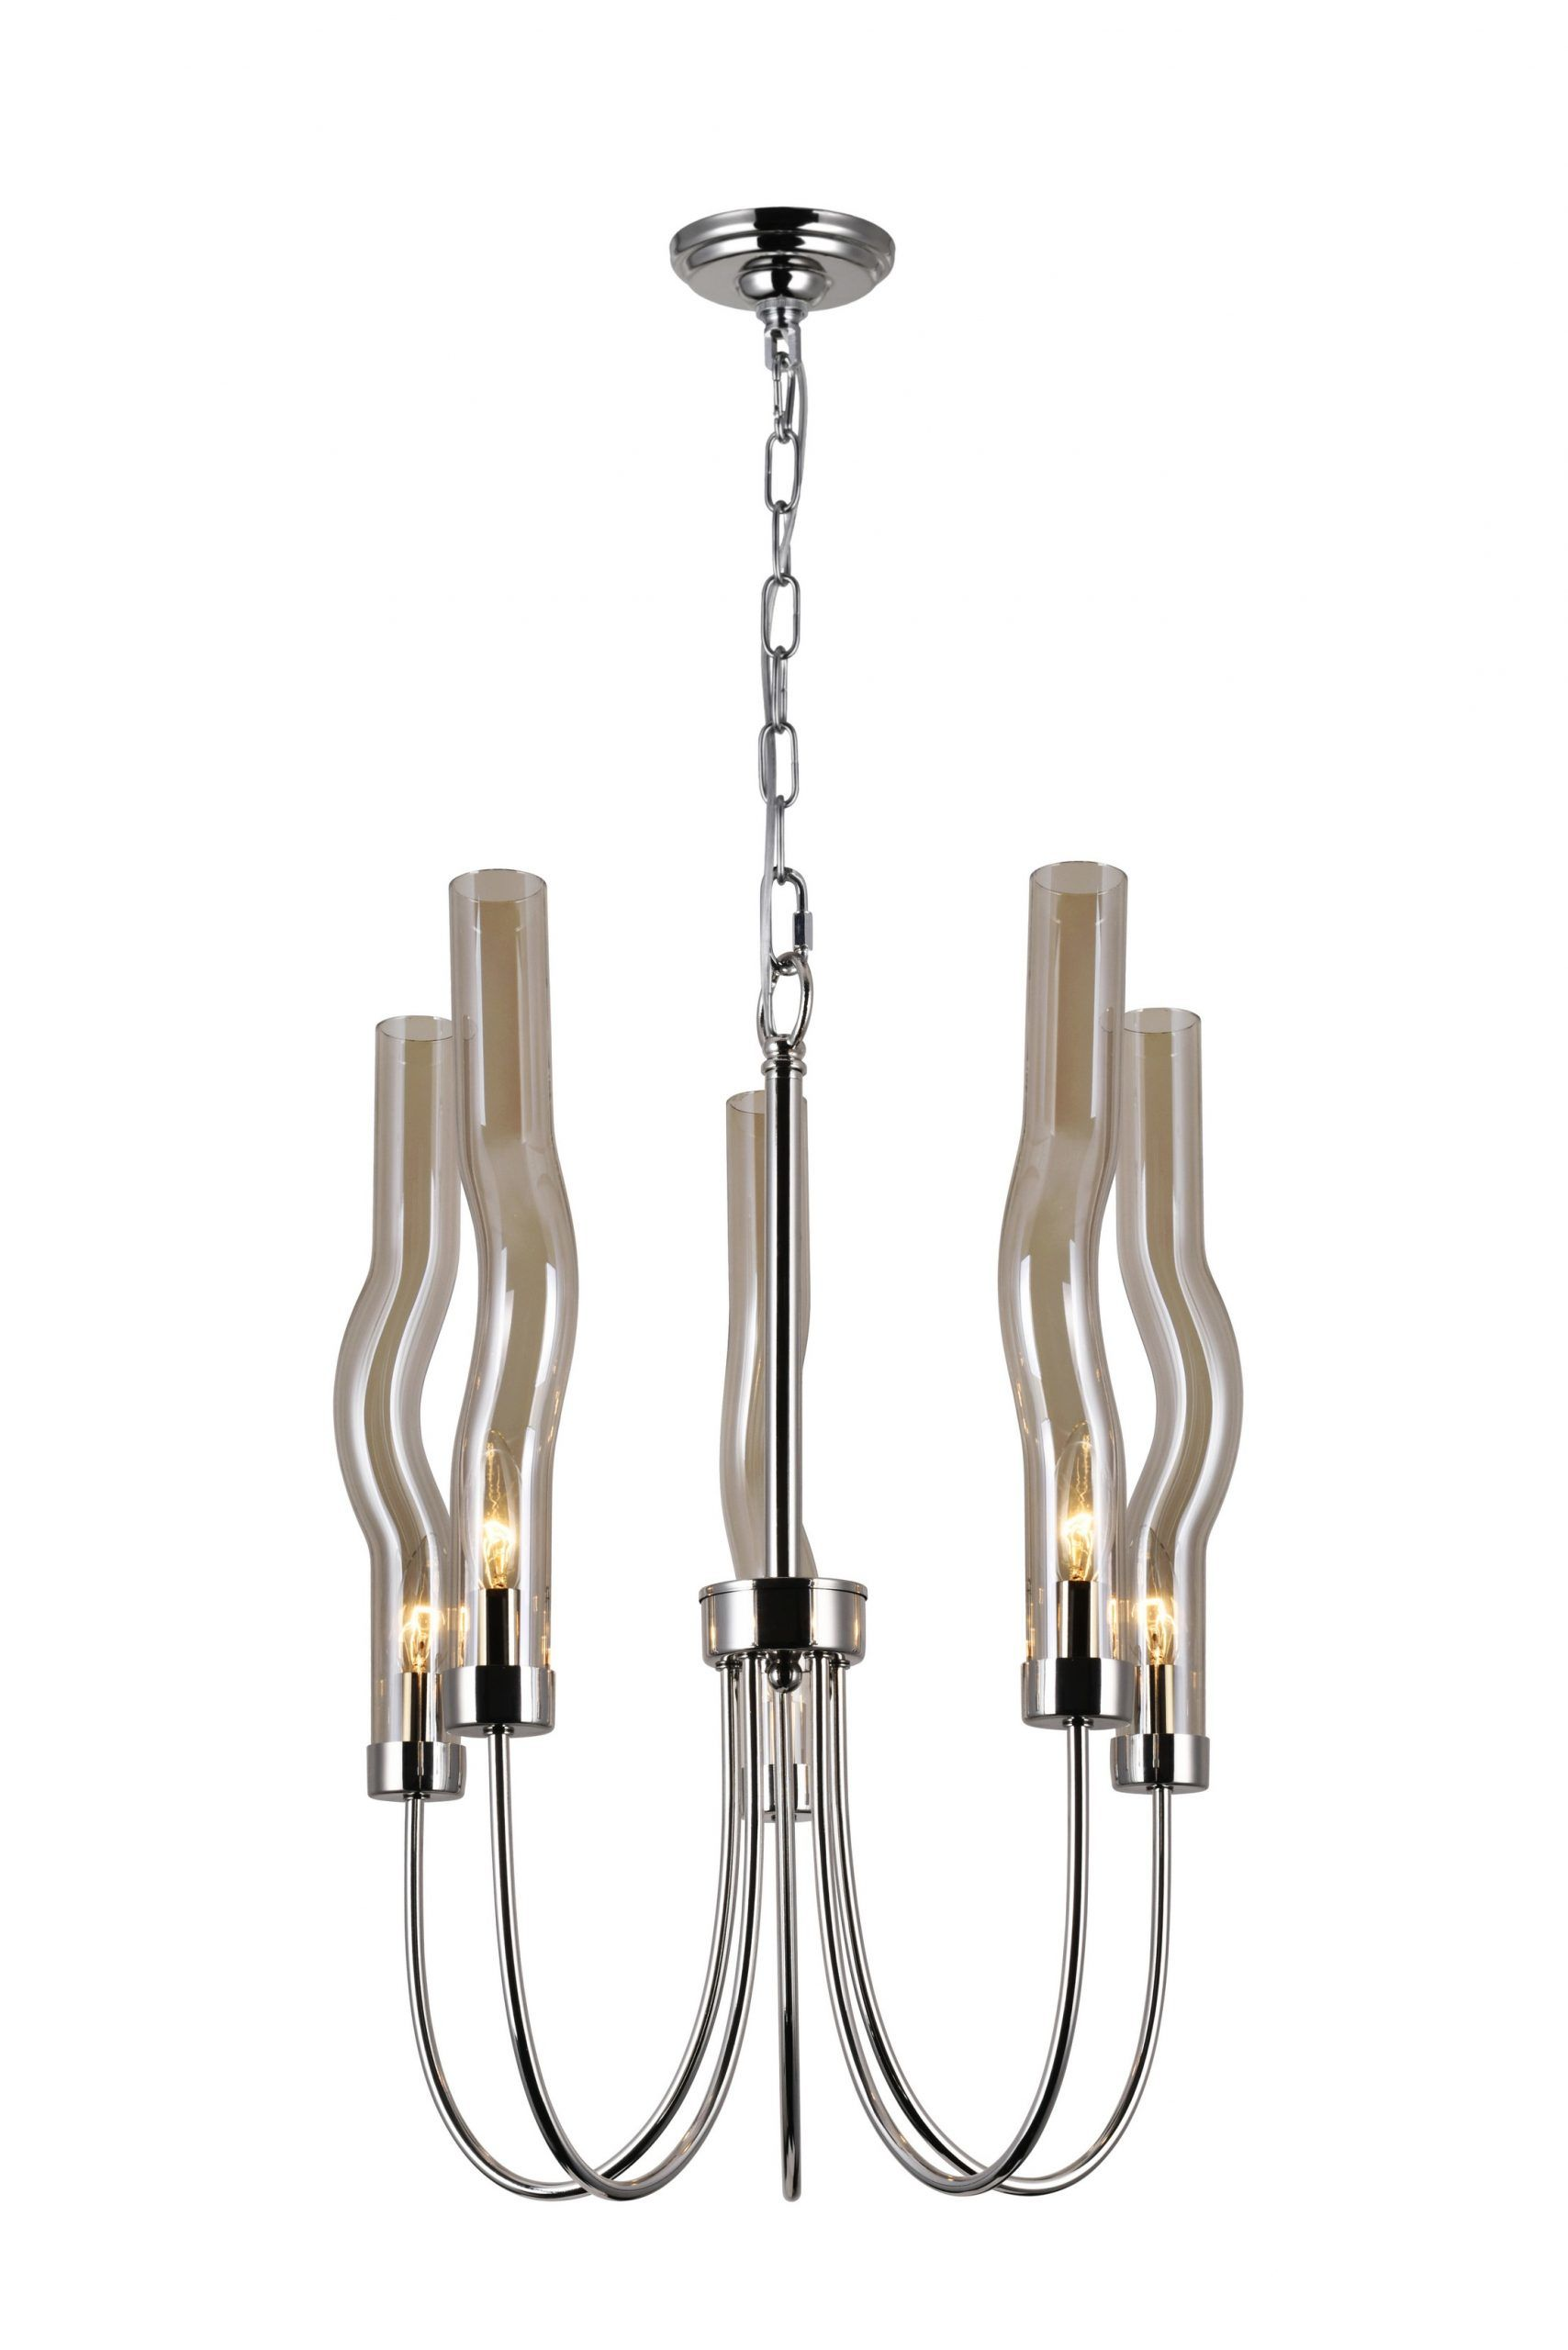 5 Light Chandelier with Polished Nickel Finish